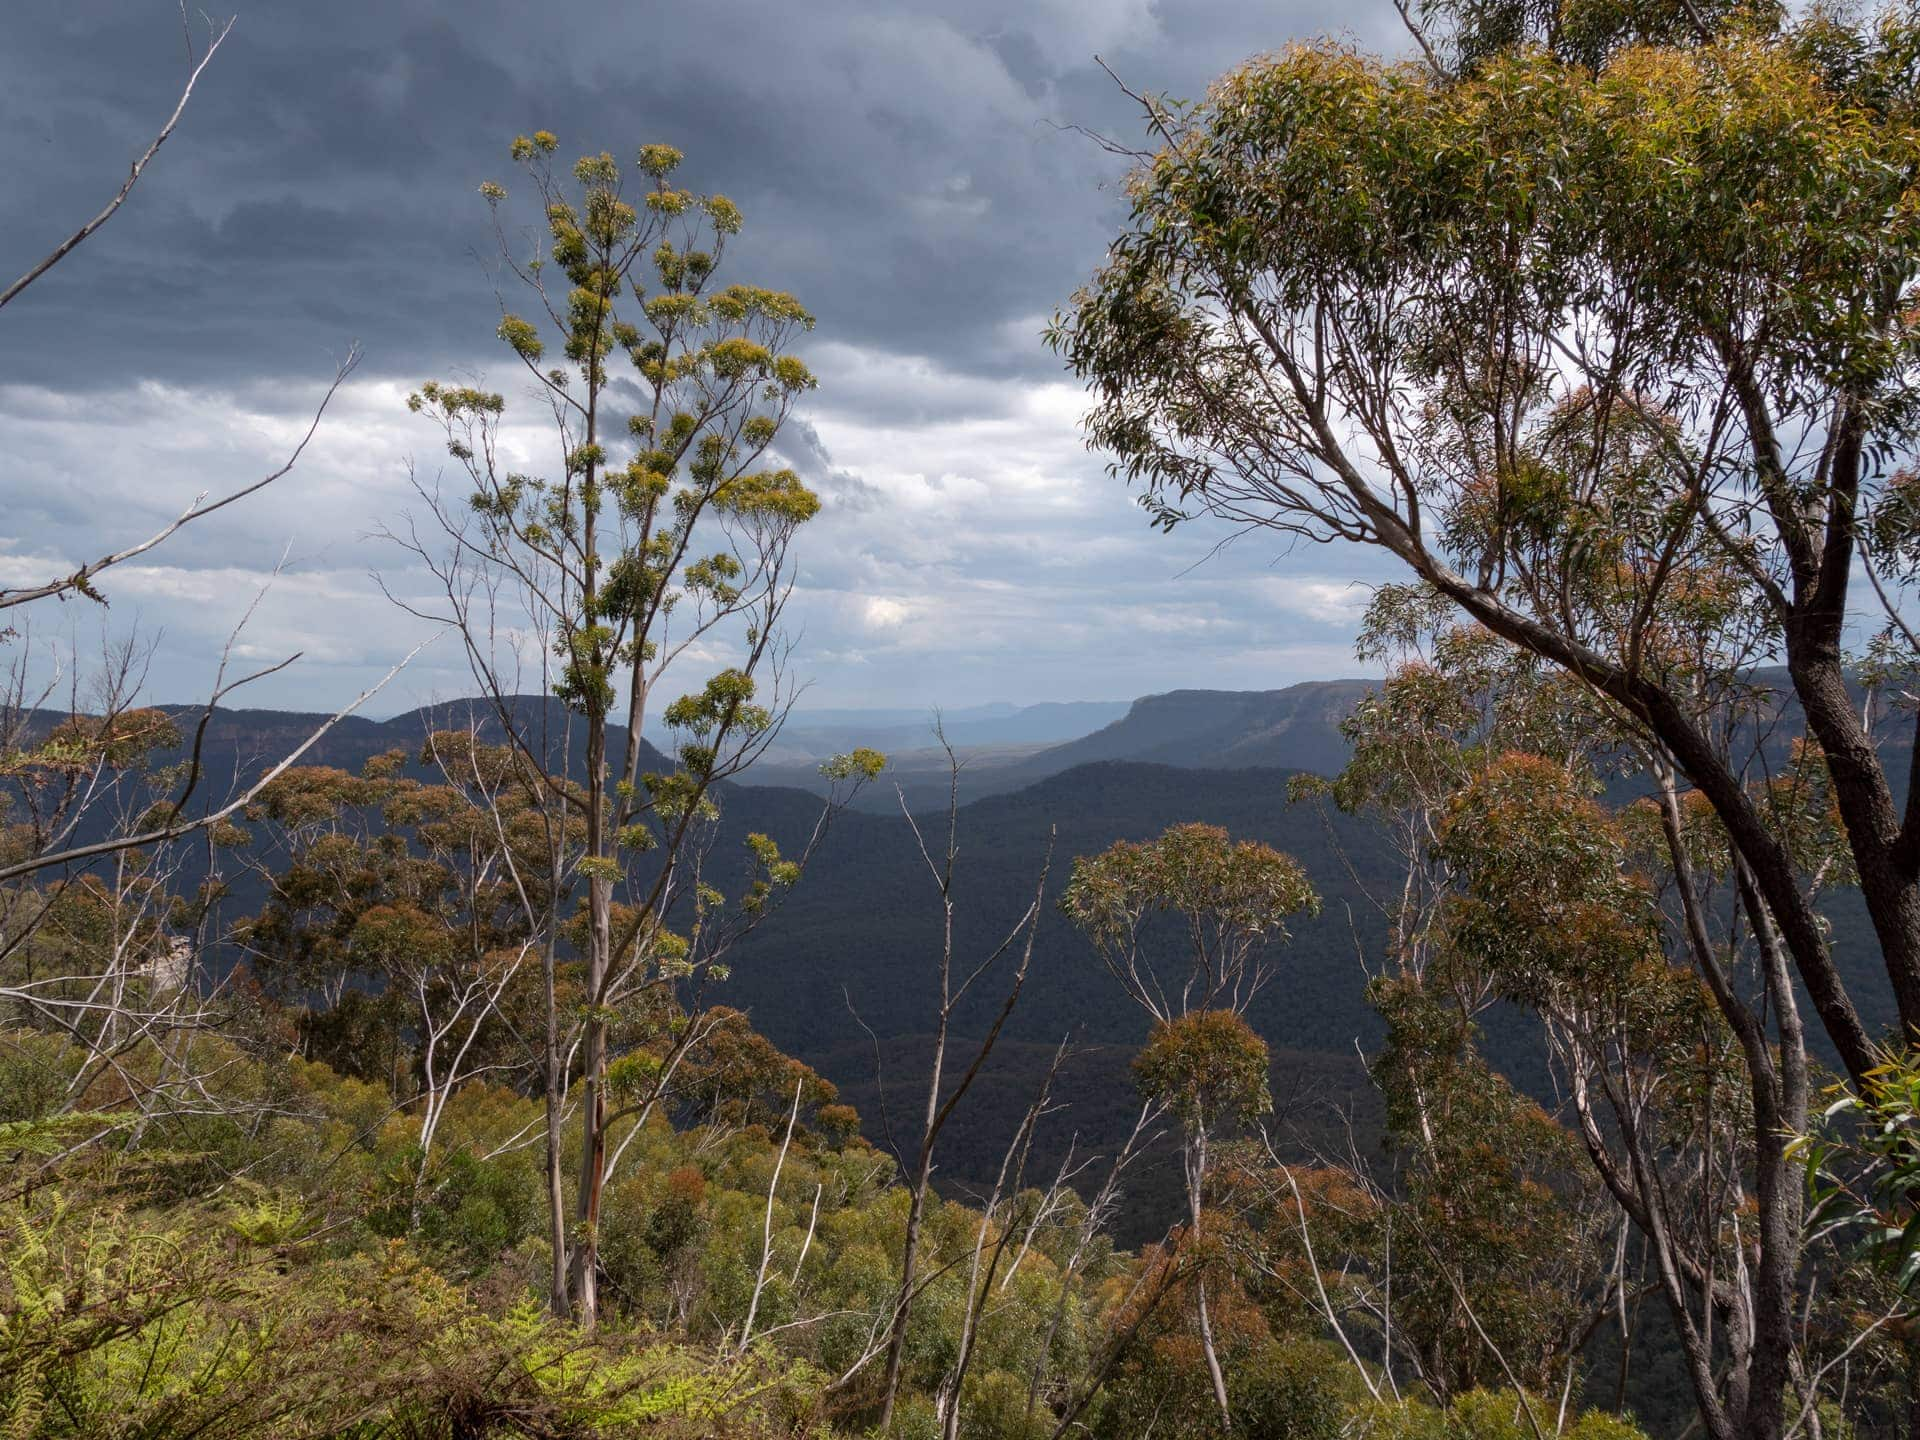 Les Blue Mountains, à 2h de Sydney en voiture ou train 35